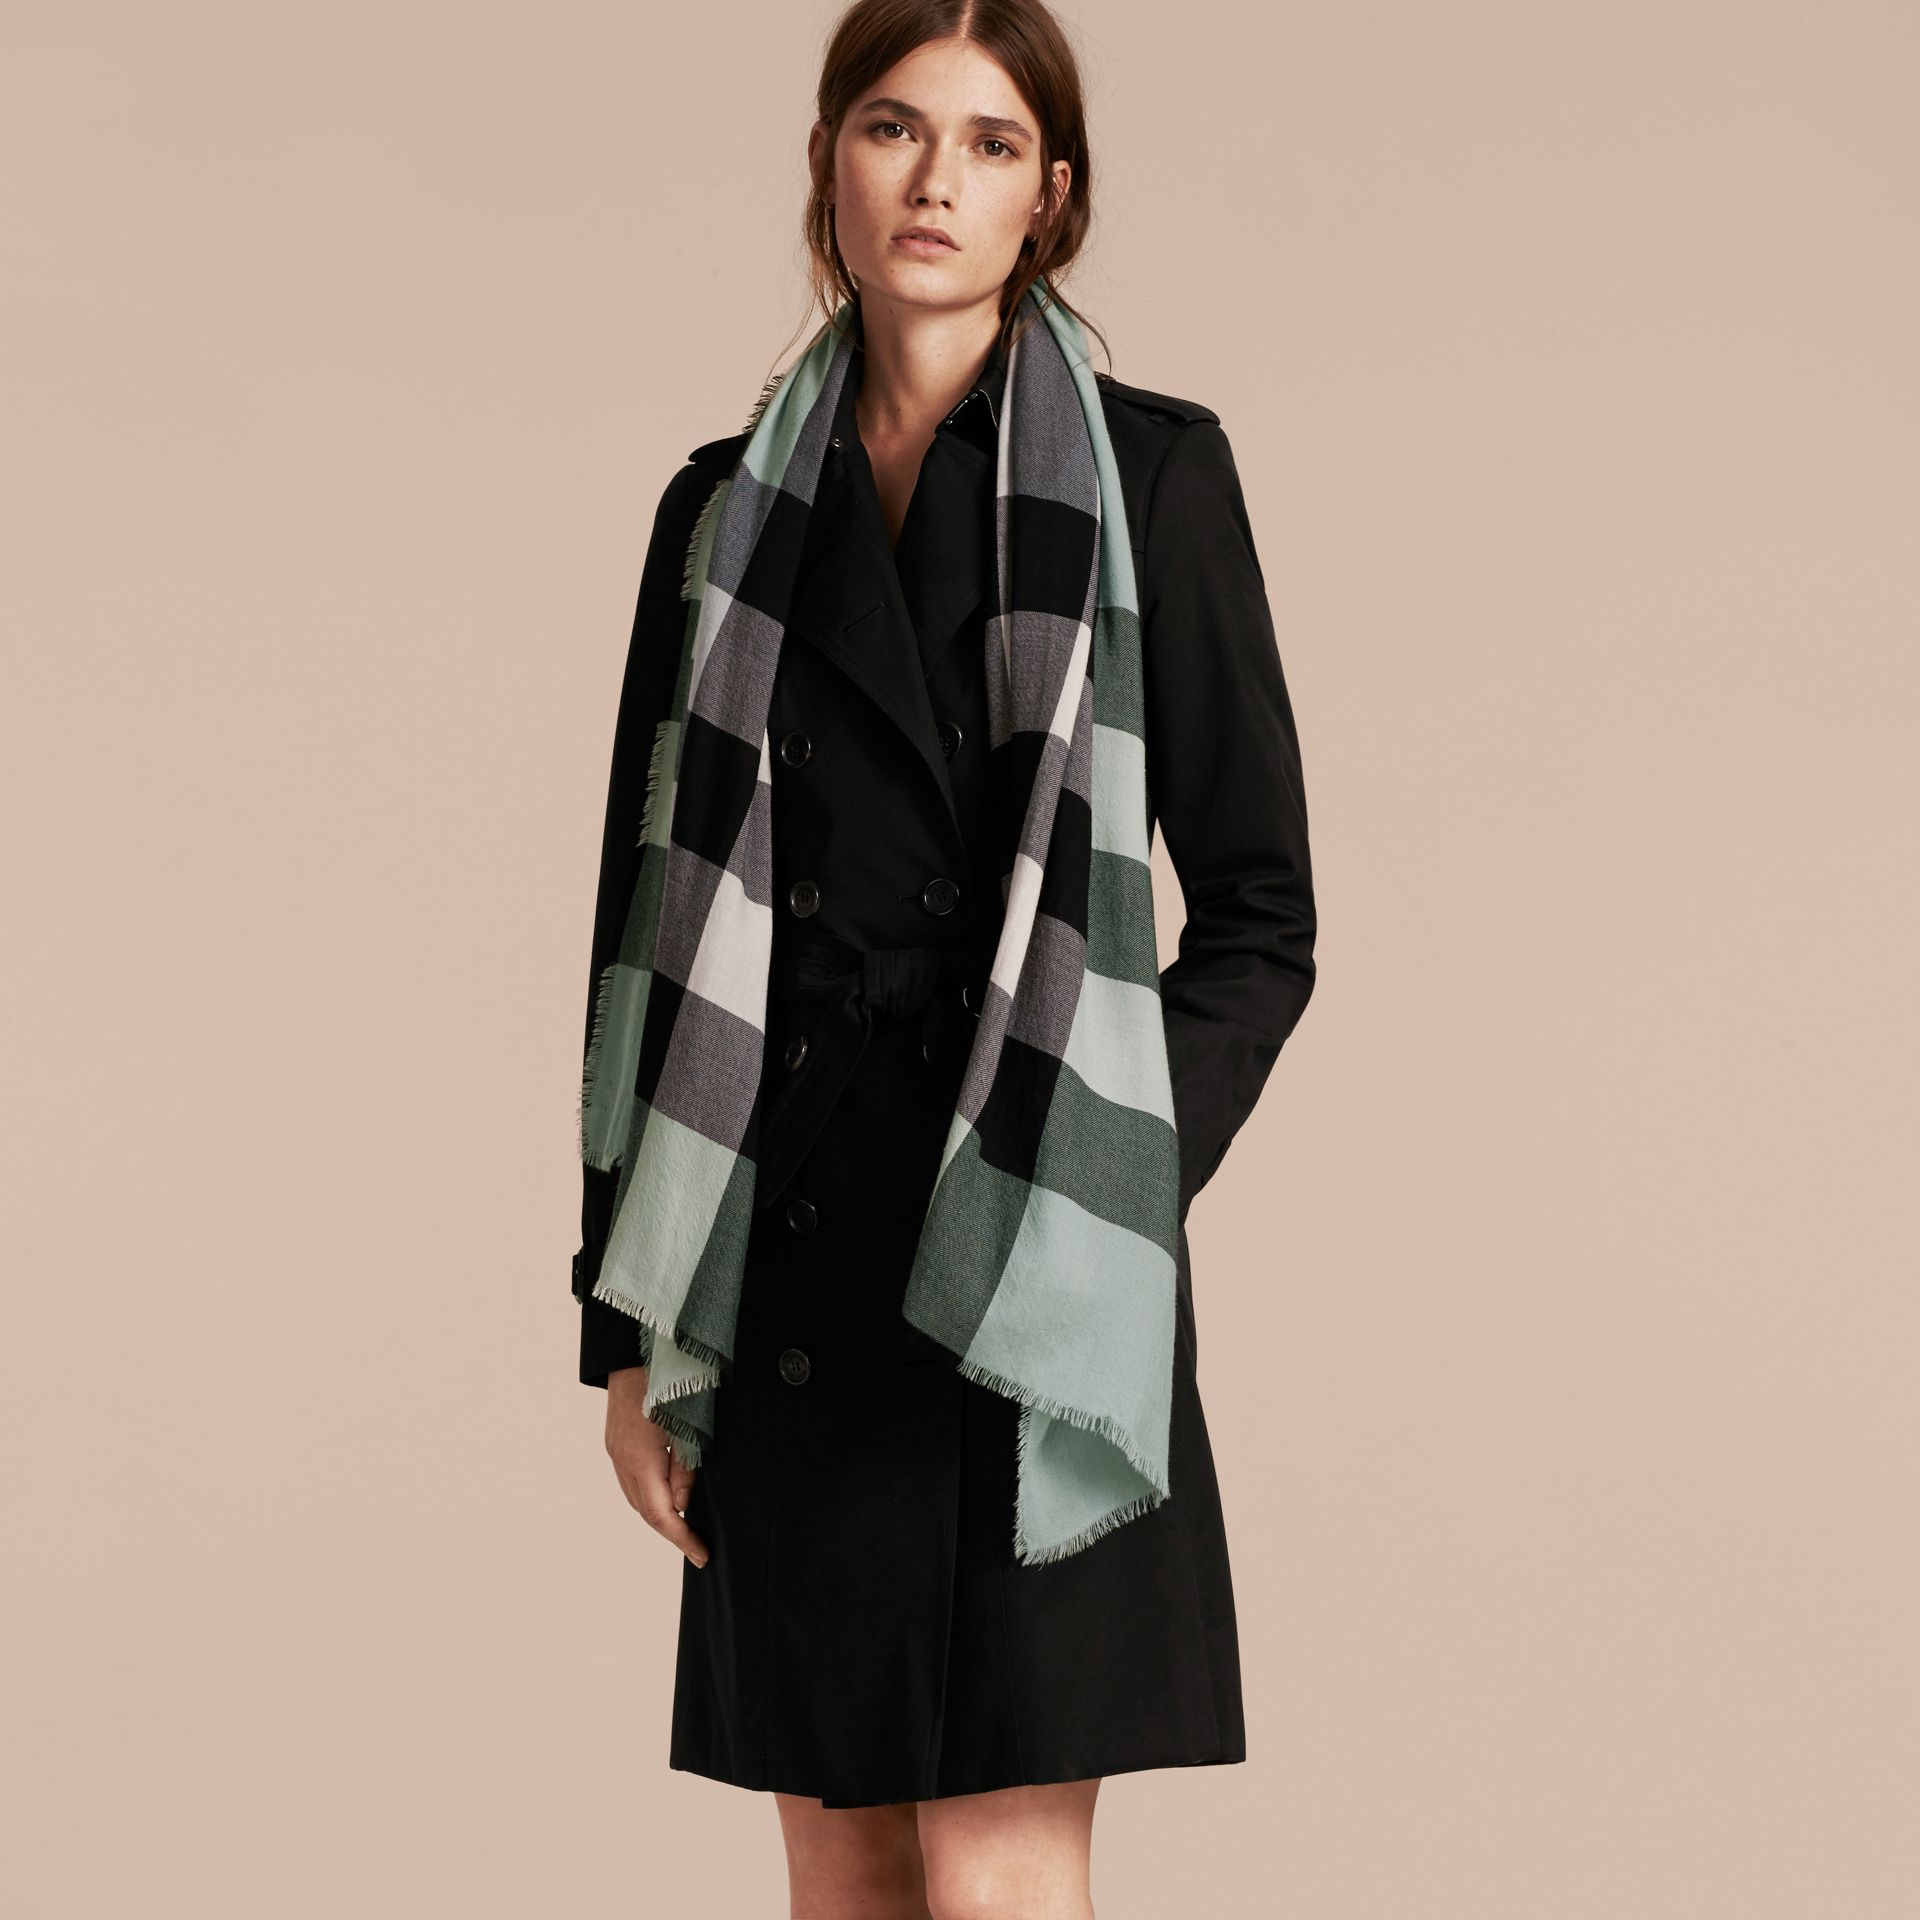 Lightweight Check Cashmere Scarf in Dusty Mint | Burberry United States - gallery image 2